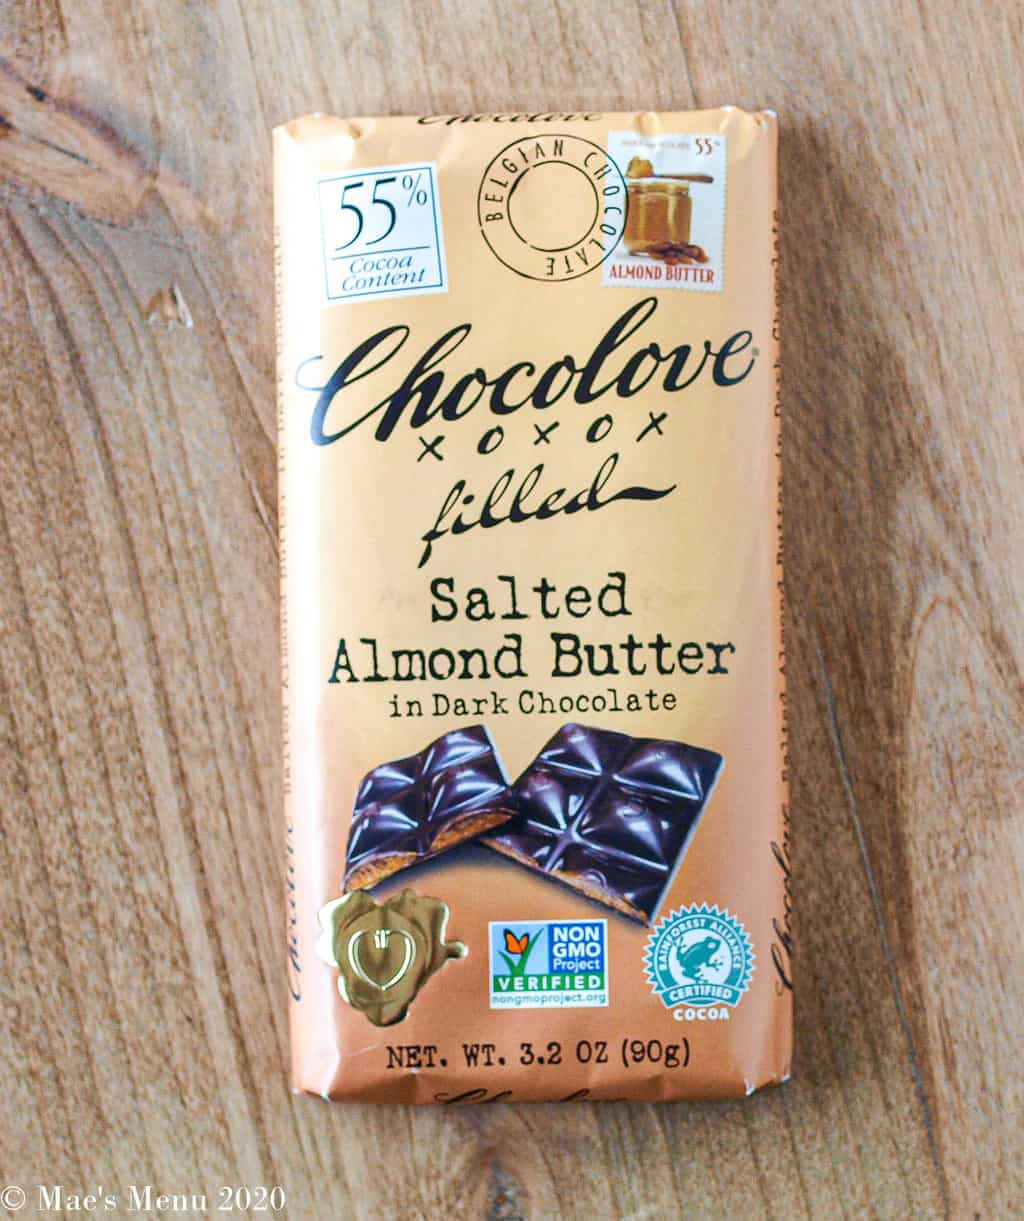 A ar of Chocolove xoxo filled salted almond butter in dark chocolate